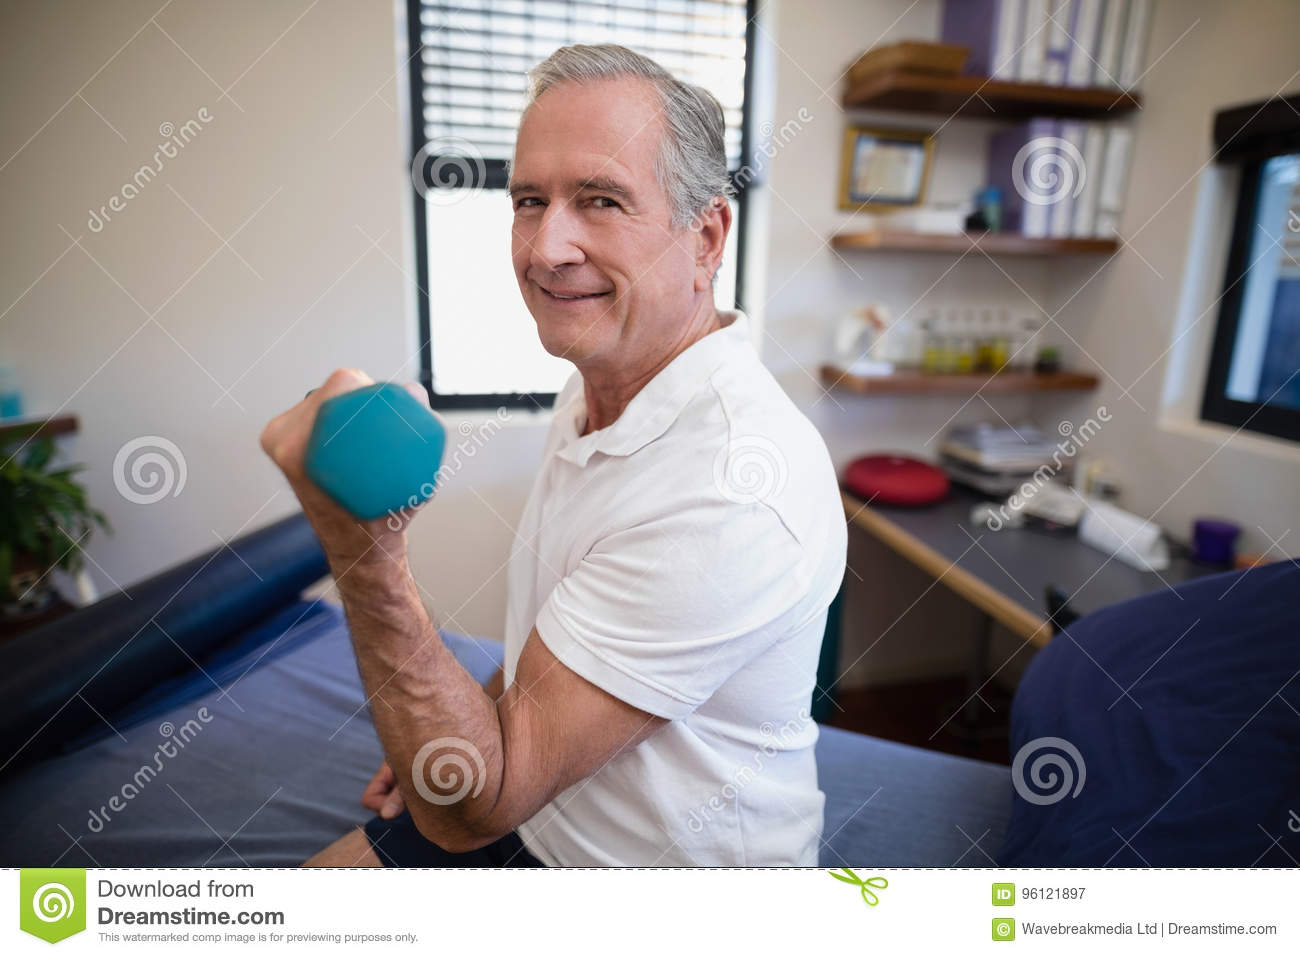 Side view portrait of smiling senior male patient lifting dumbbell